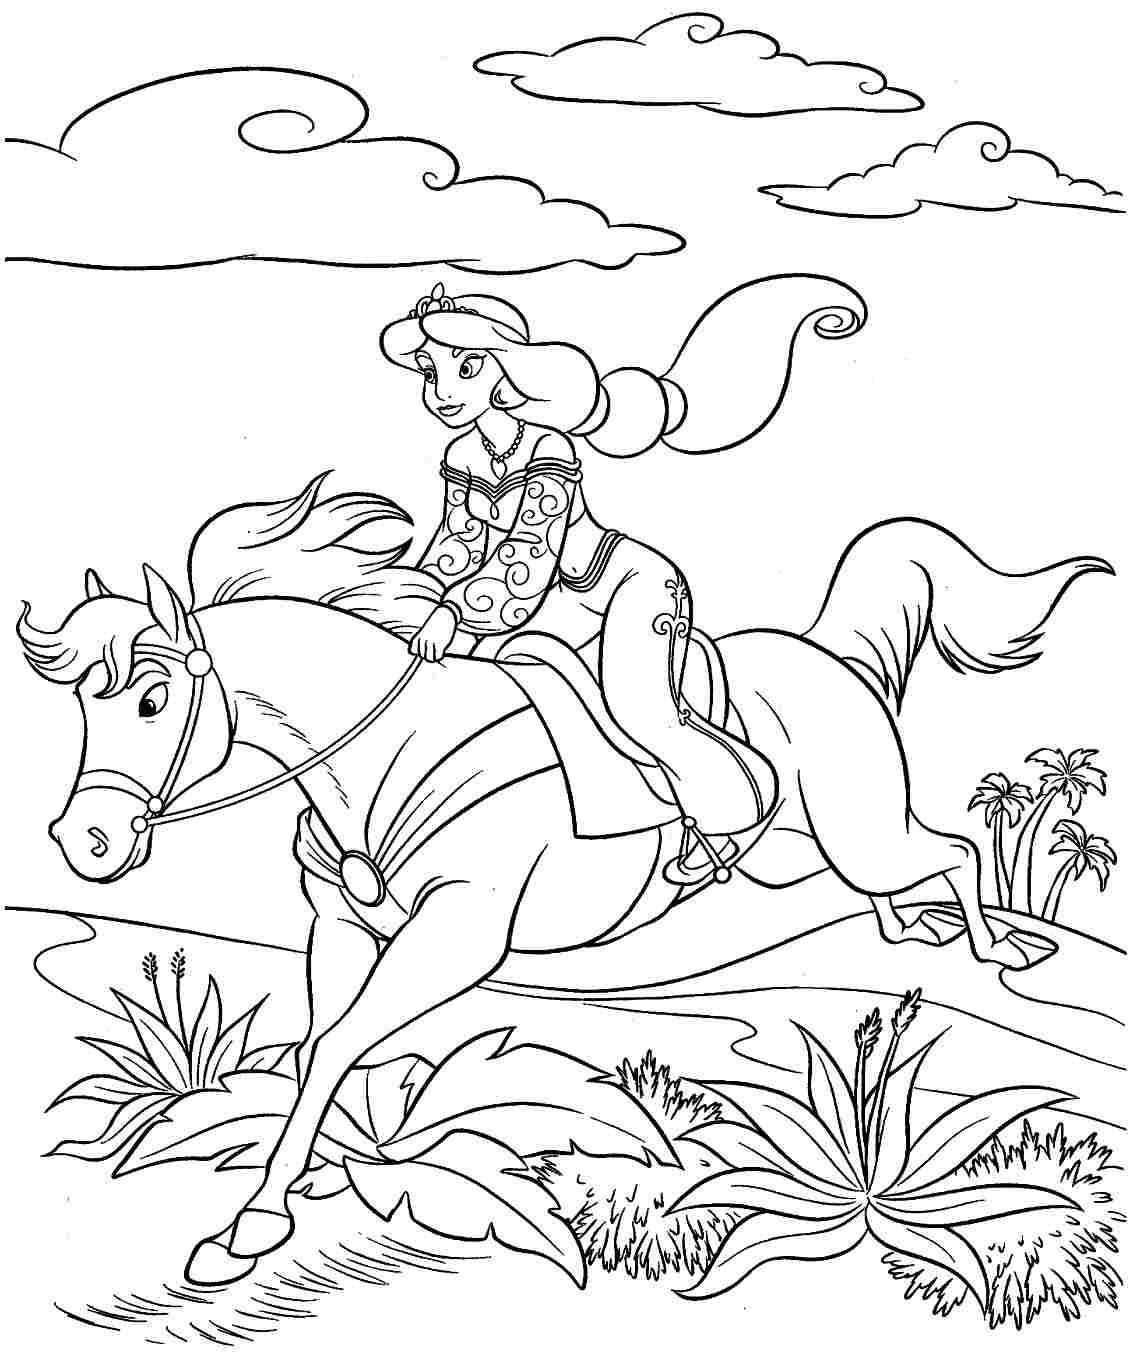 Disney princess coloring book for adults - Coloring Pages Disney Princess Jasmine Printable For Kids Boys 55383